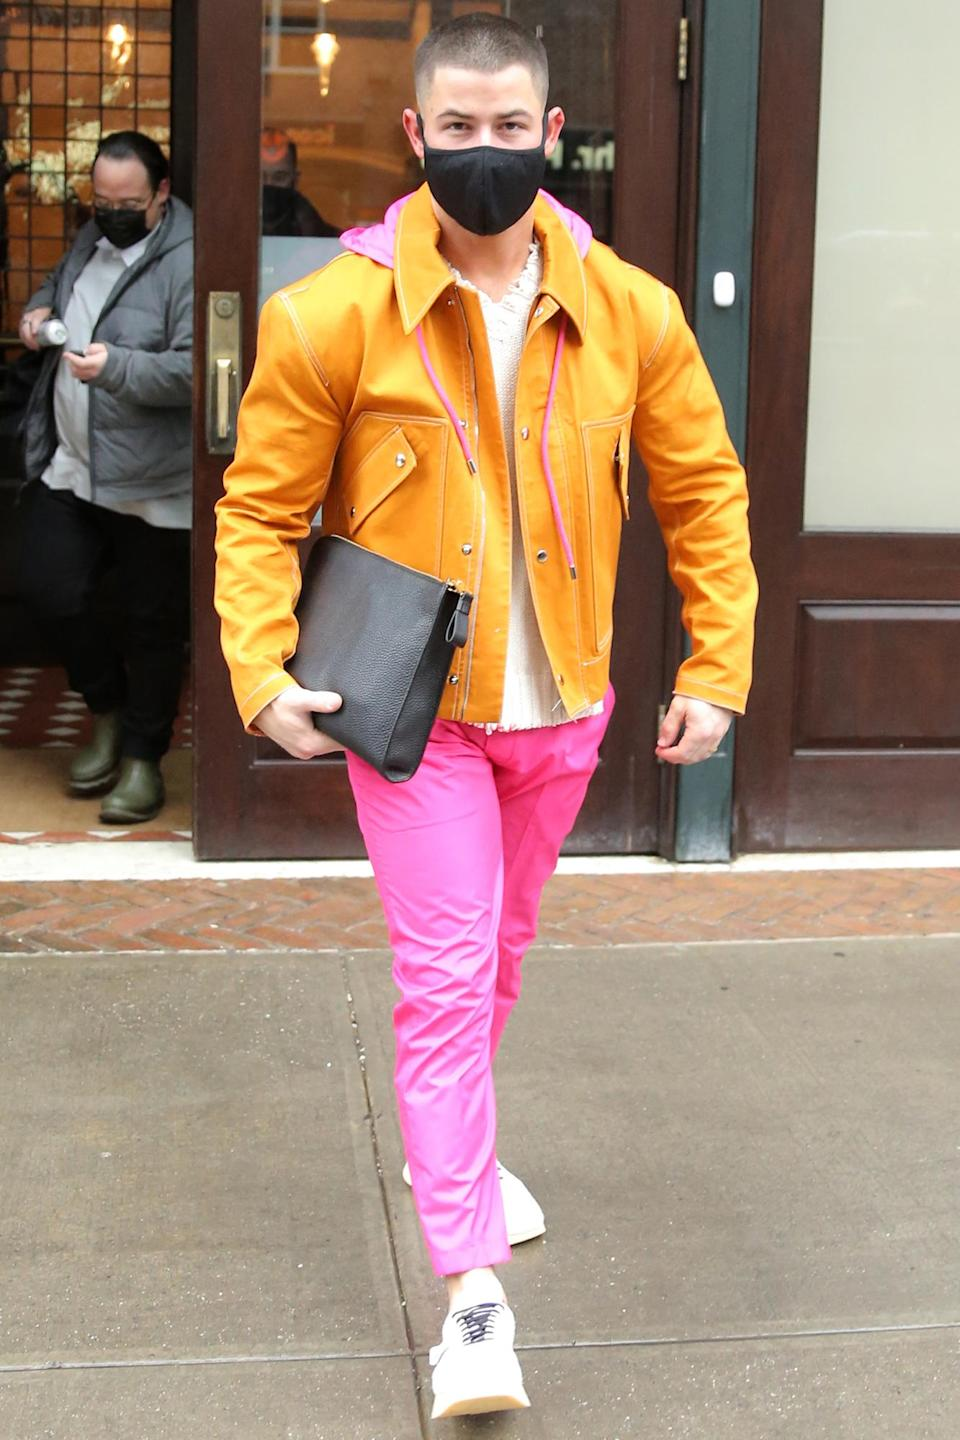 <p>Nick Jonas wore a colorful outfit on his way to host and perform on <em>Saturday Night Live</em> in New York City.</p>